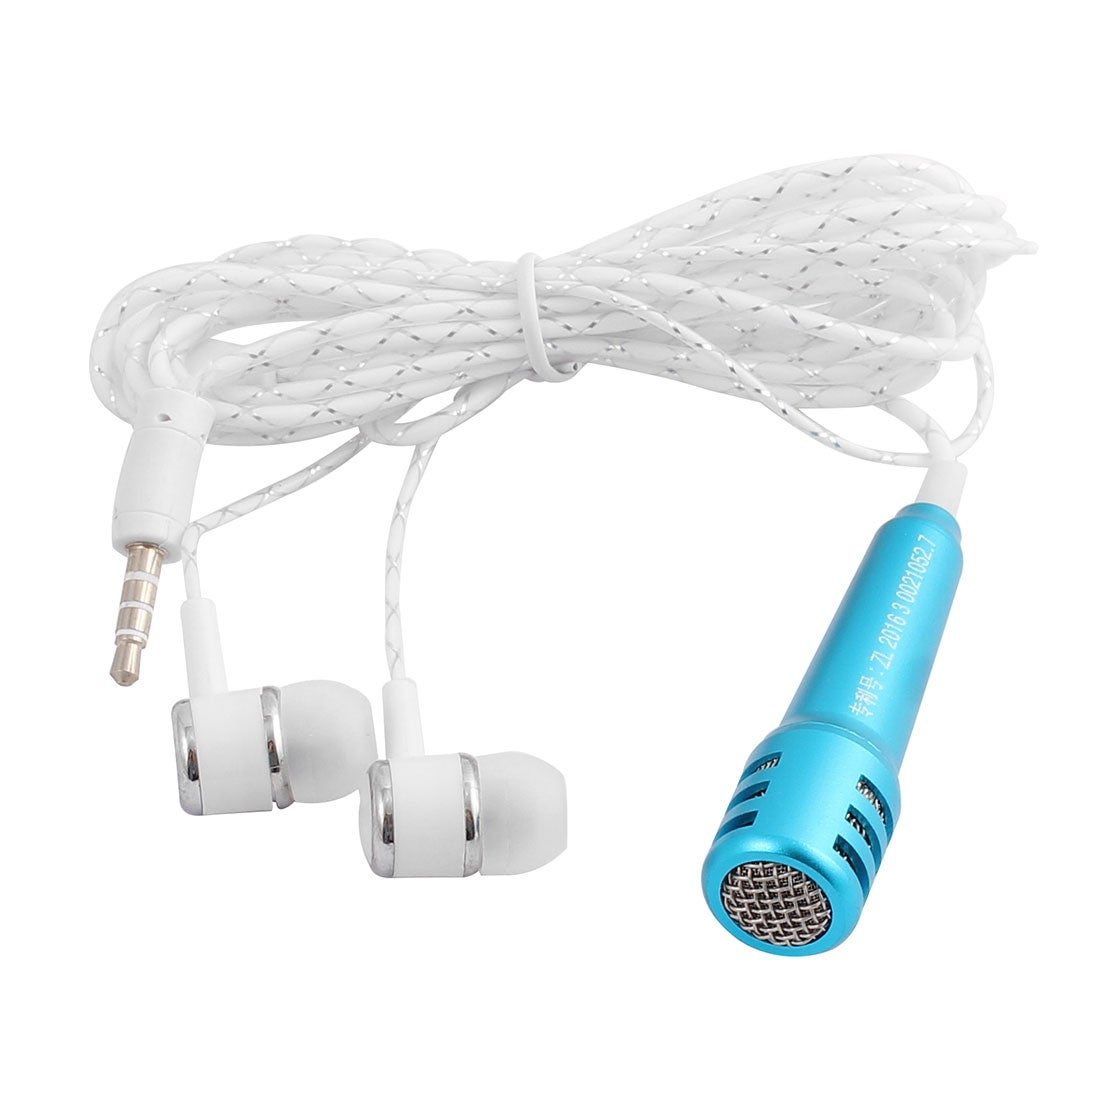 Shop Mini Earbuds Microphone Headset Earphone Navy Blue For Cellphone Smart Phone Overstock 17604344